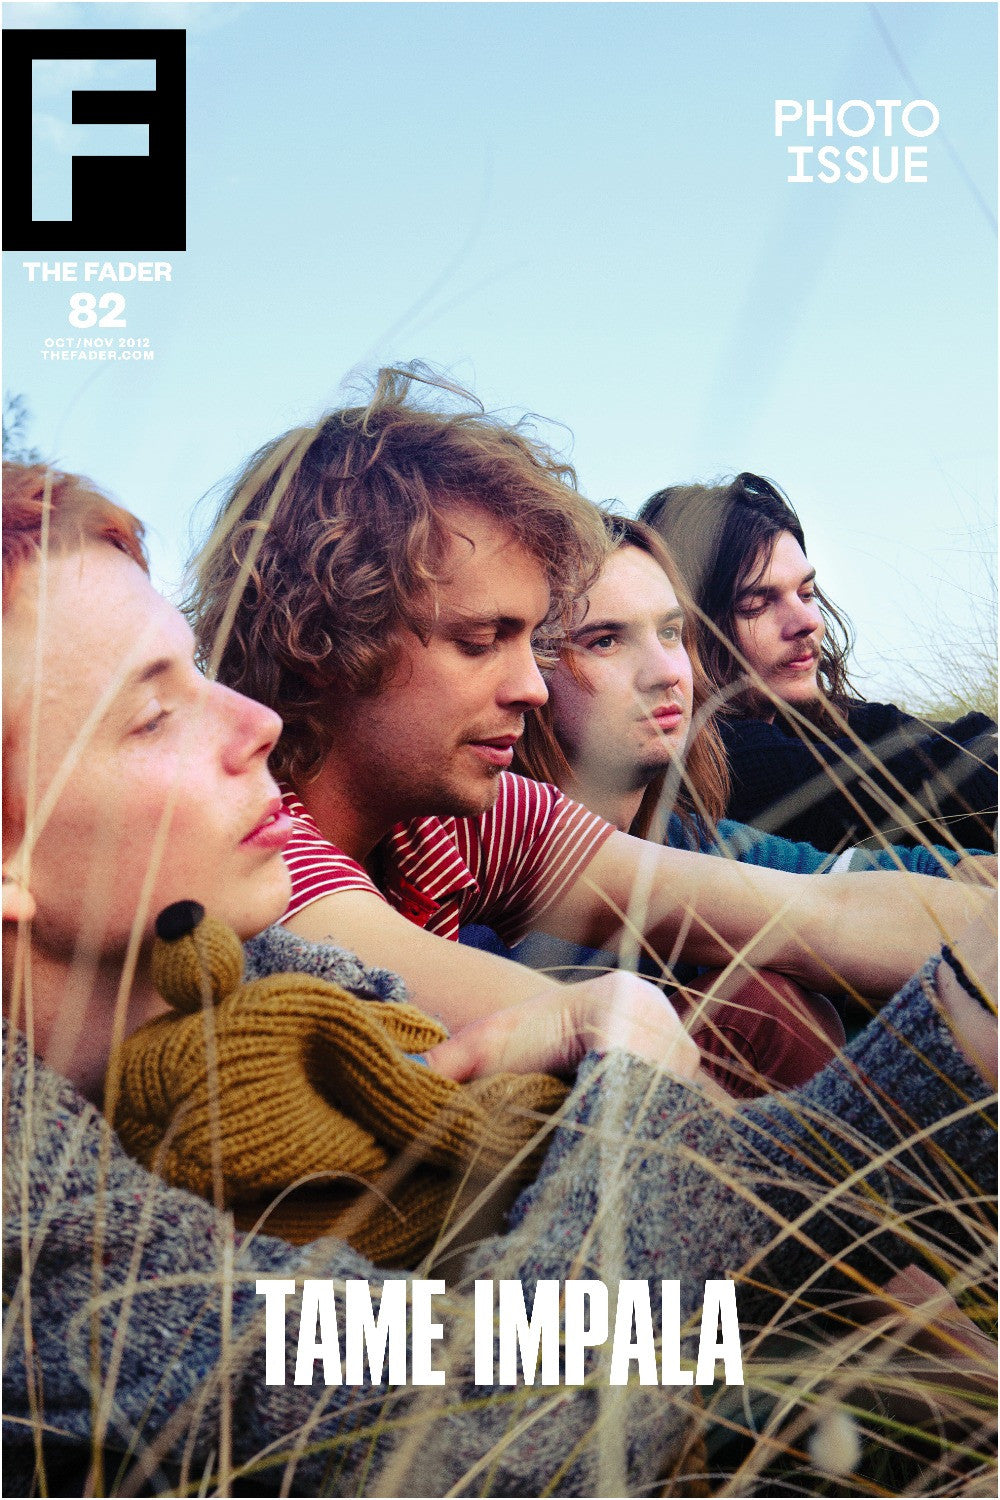 "Tame Impala / The FADER Issue 82 Cover 20"" x 30"" Poster - The FADER"